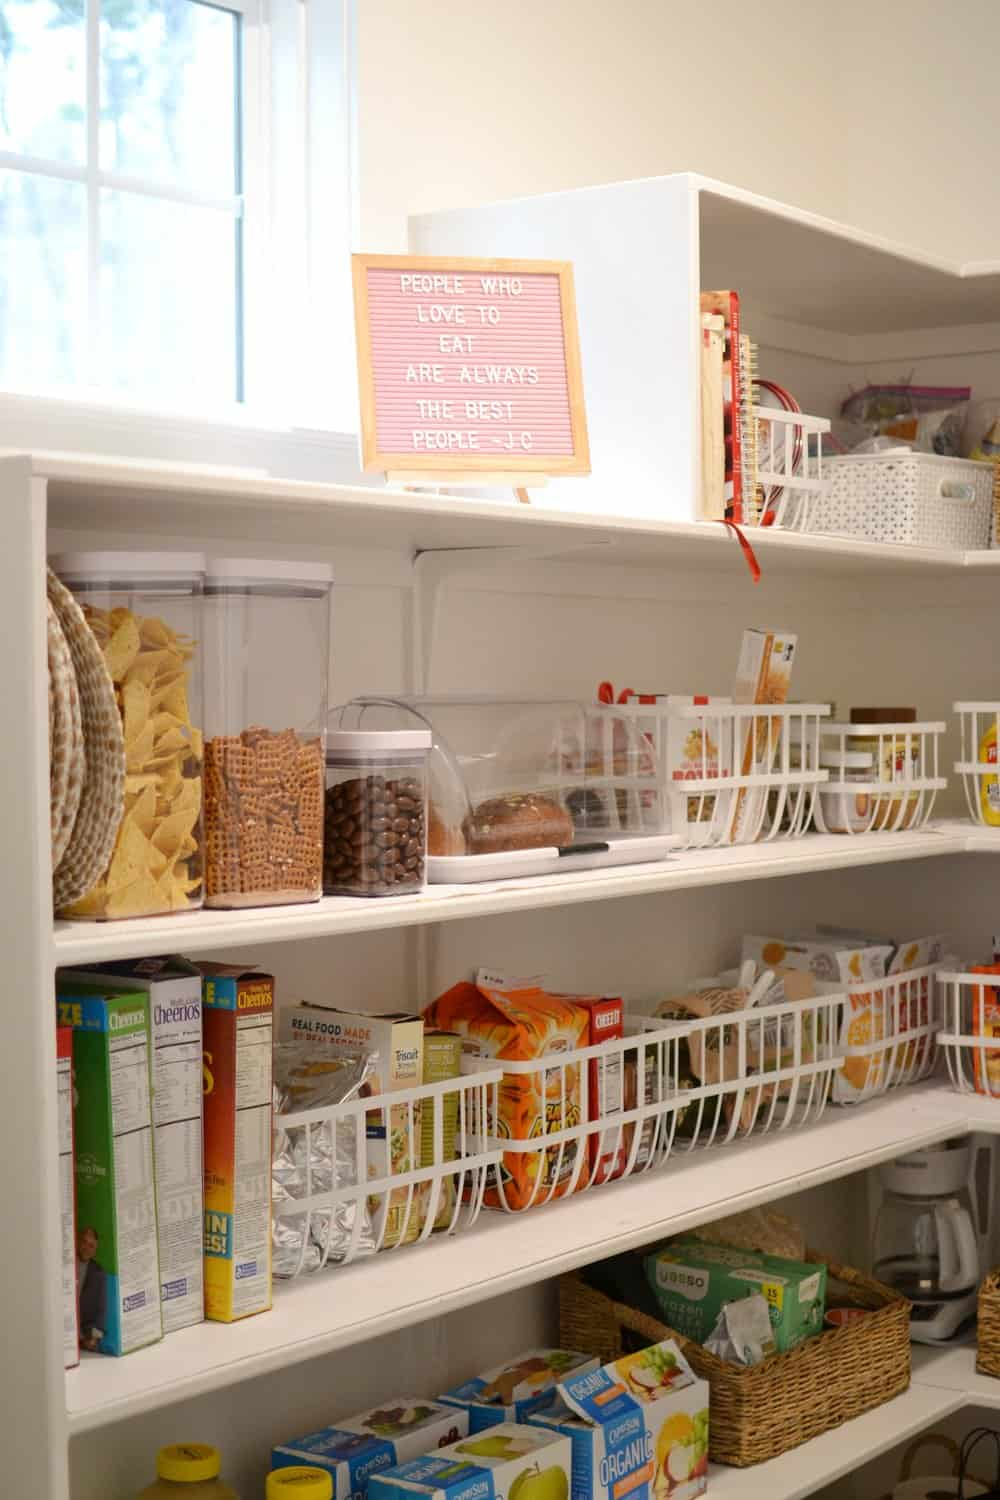 organized shelves in a pantry